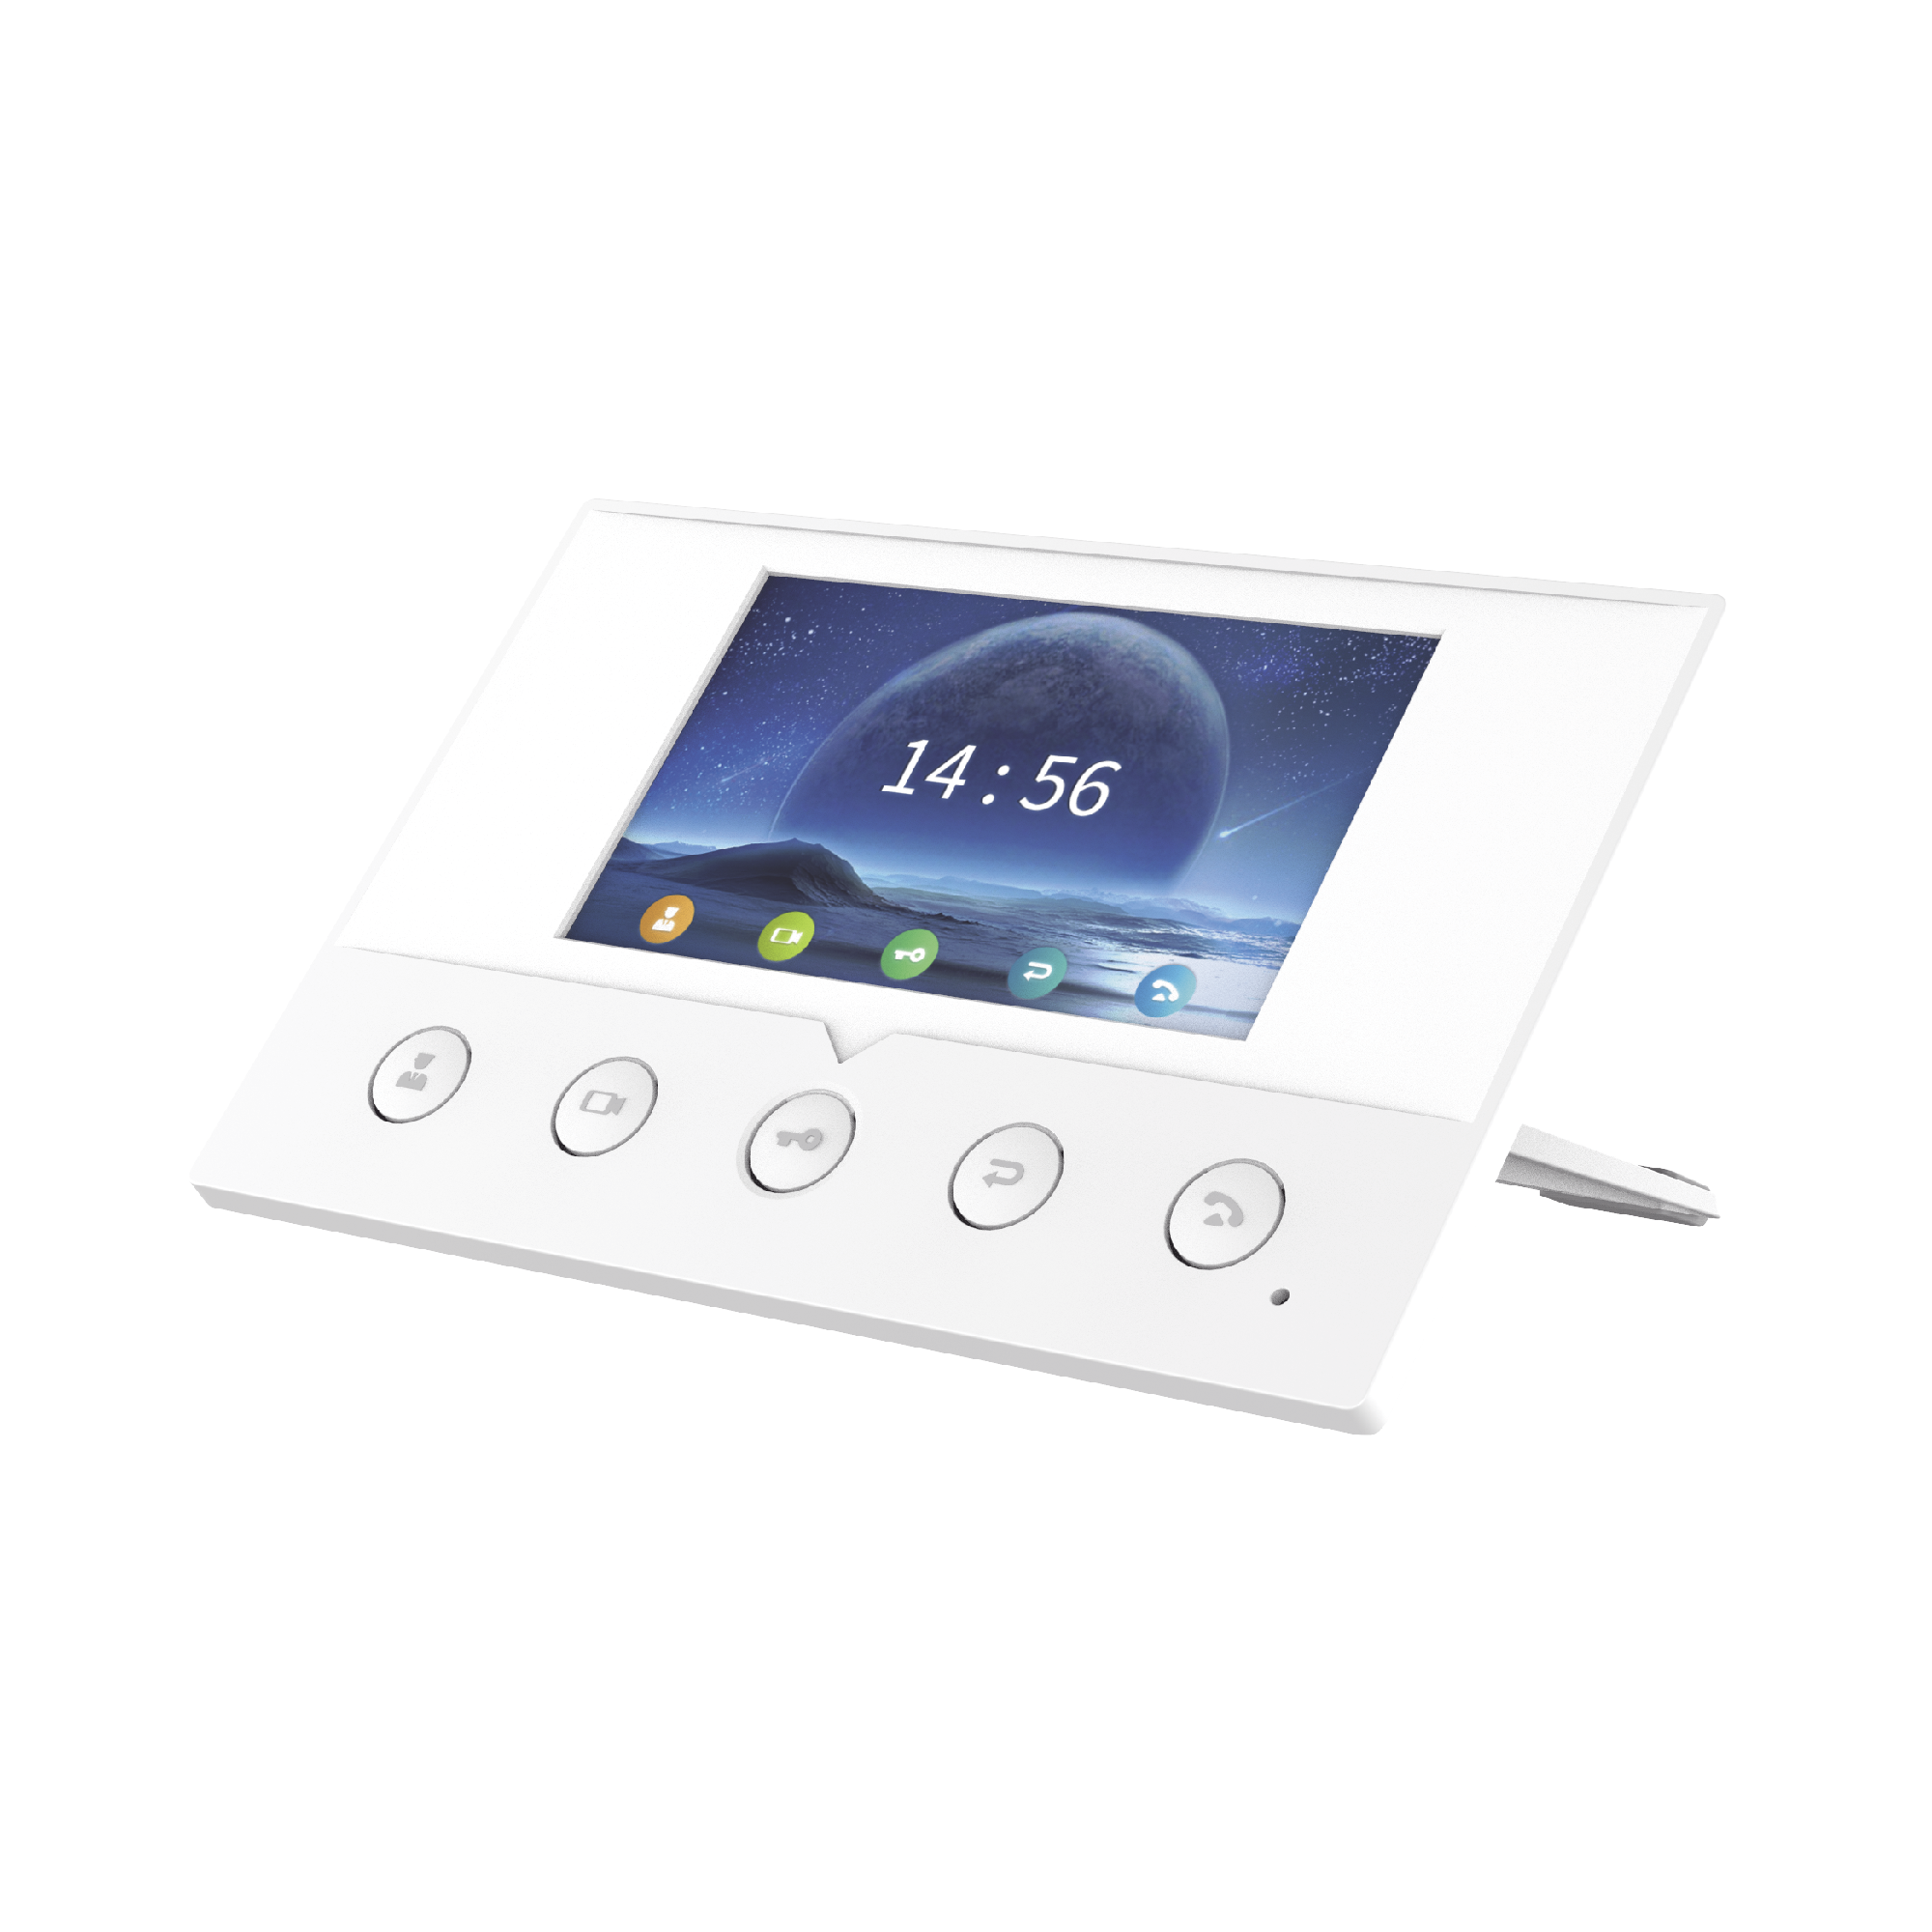 Monitor IP/SIP para interior, Wi-Fi, pantalla a color de 4.3, audio de 2 vías, PoE, 8 interfaces de entrada de alarma.